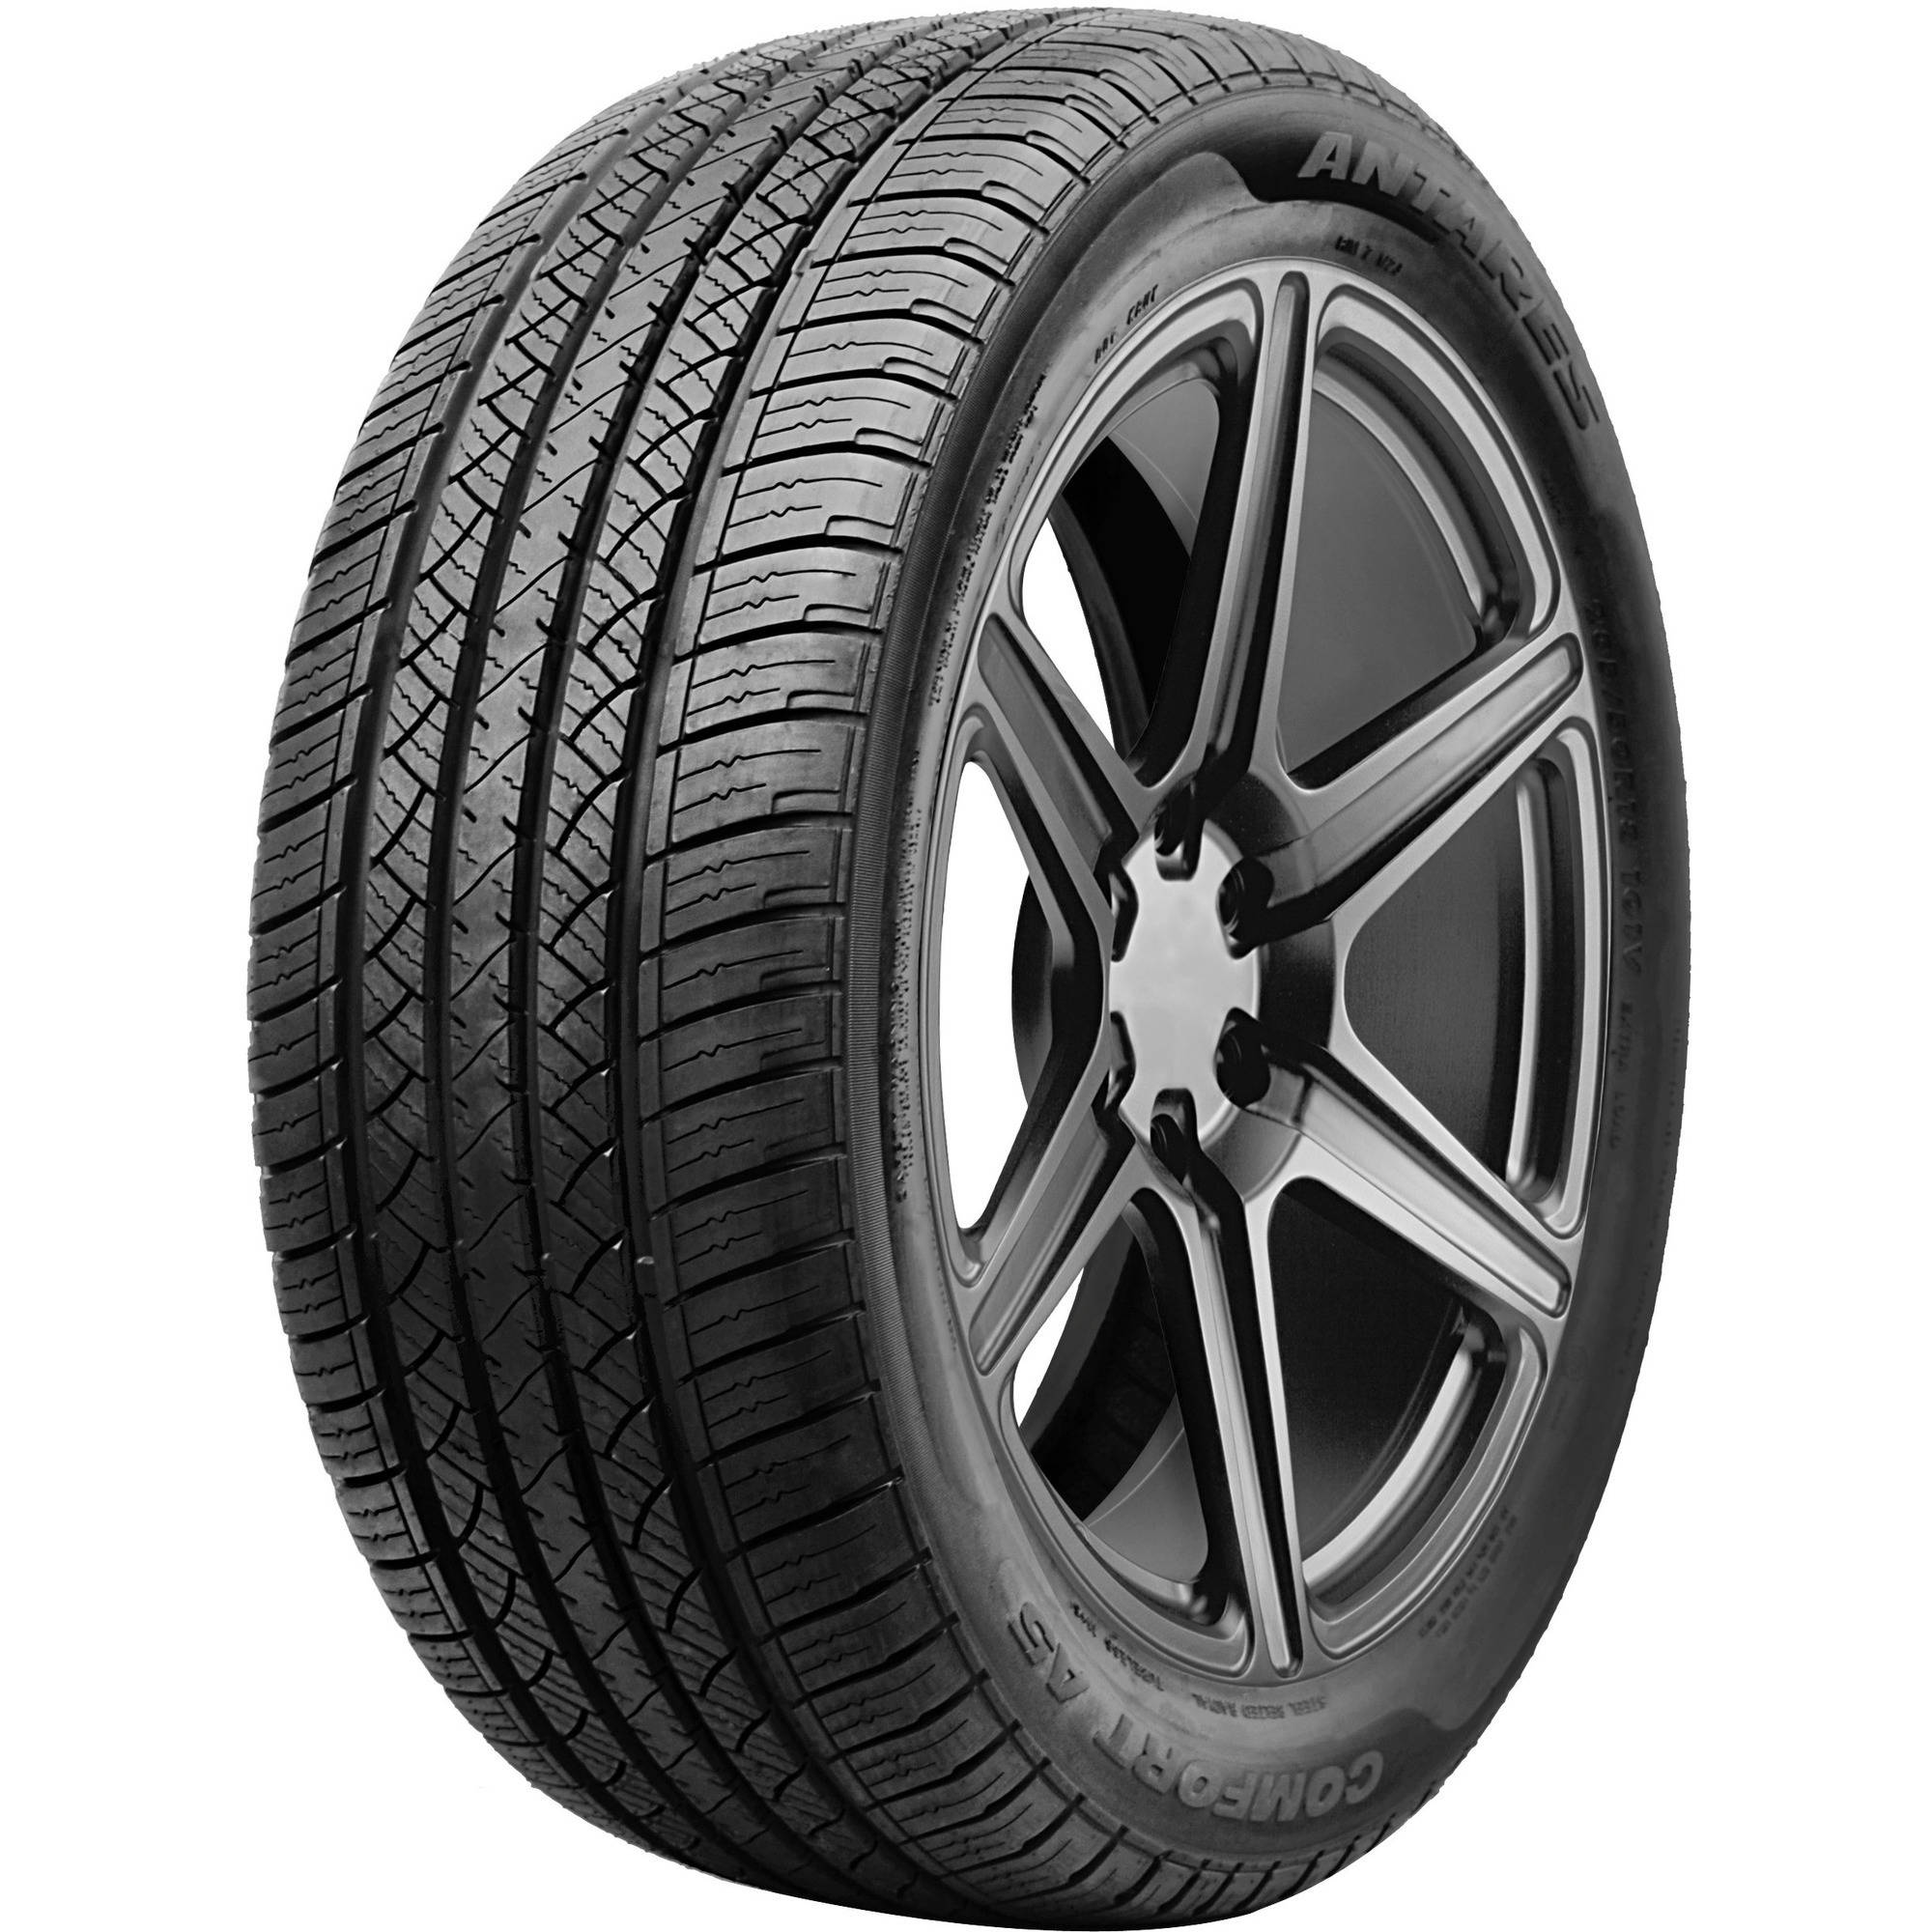 Antares Comfort A5 235/65R17 104H Tire